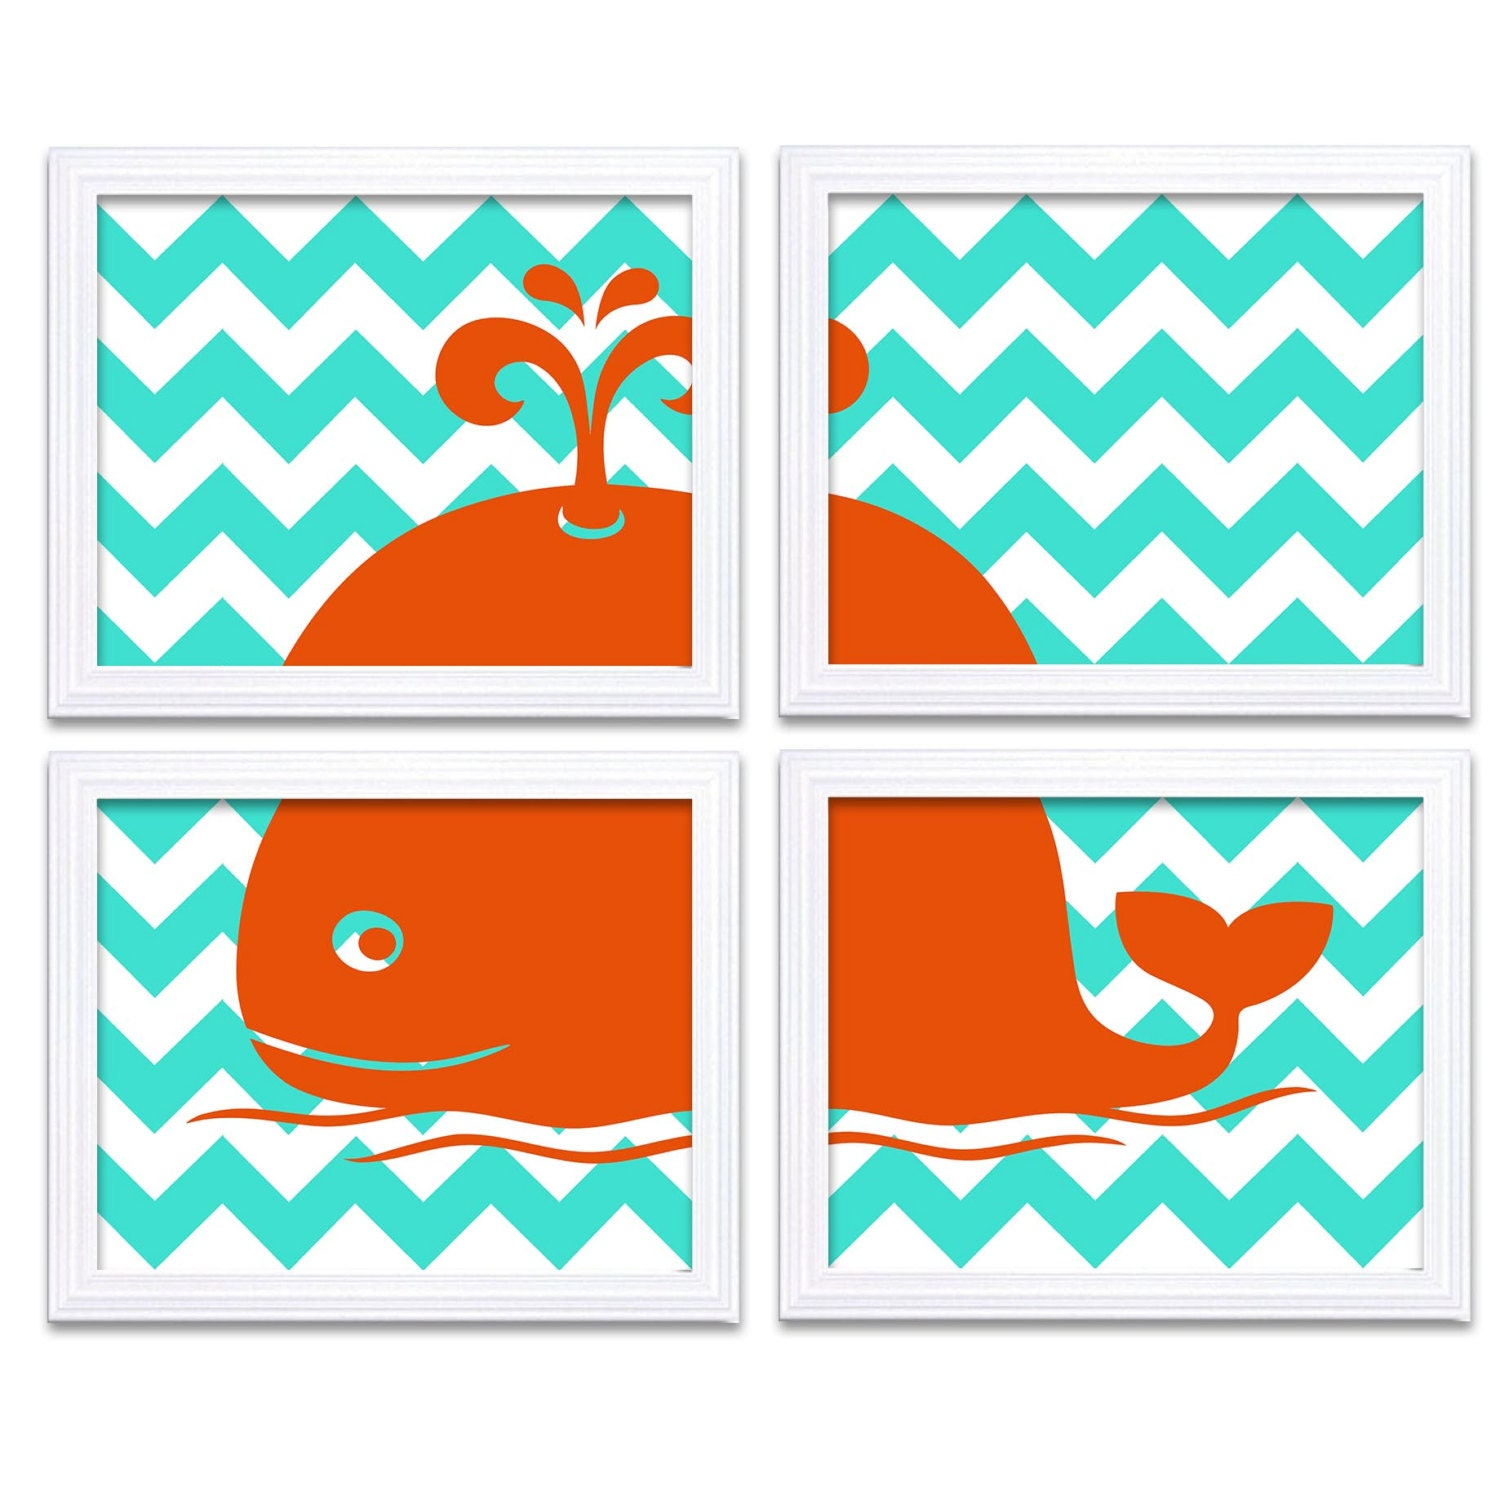 Blue Turquoise Orange Whale Nursery Art Set of 4 Prints Chevron Child Art Kids Room Wall Decor Baby